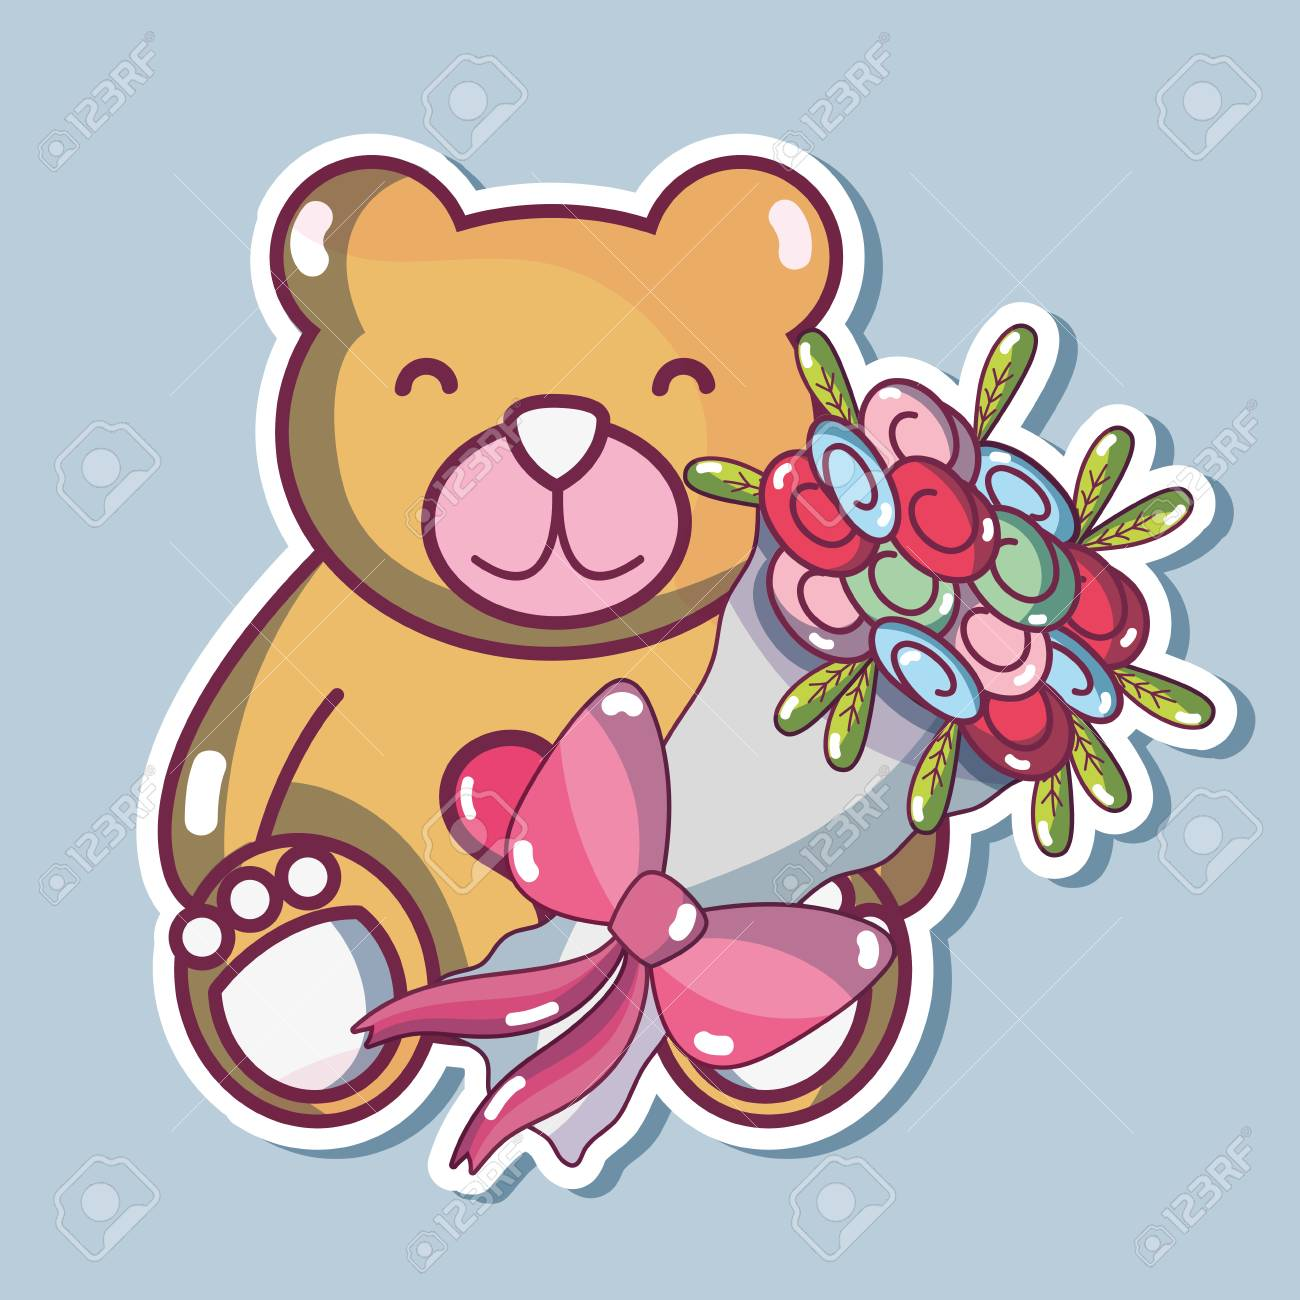 Teddy Bear Design With Bouquet Flowers Royalty Free Cliparts